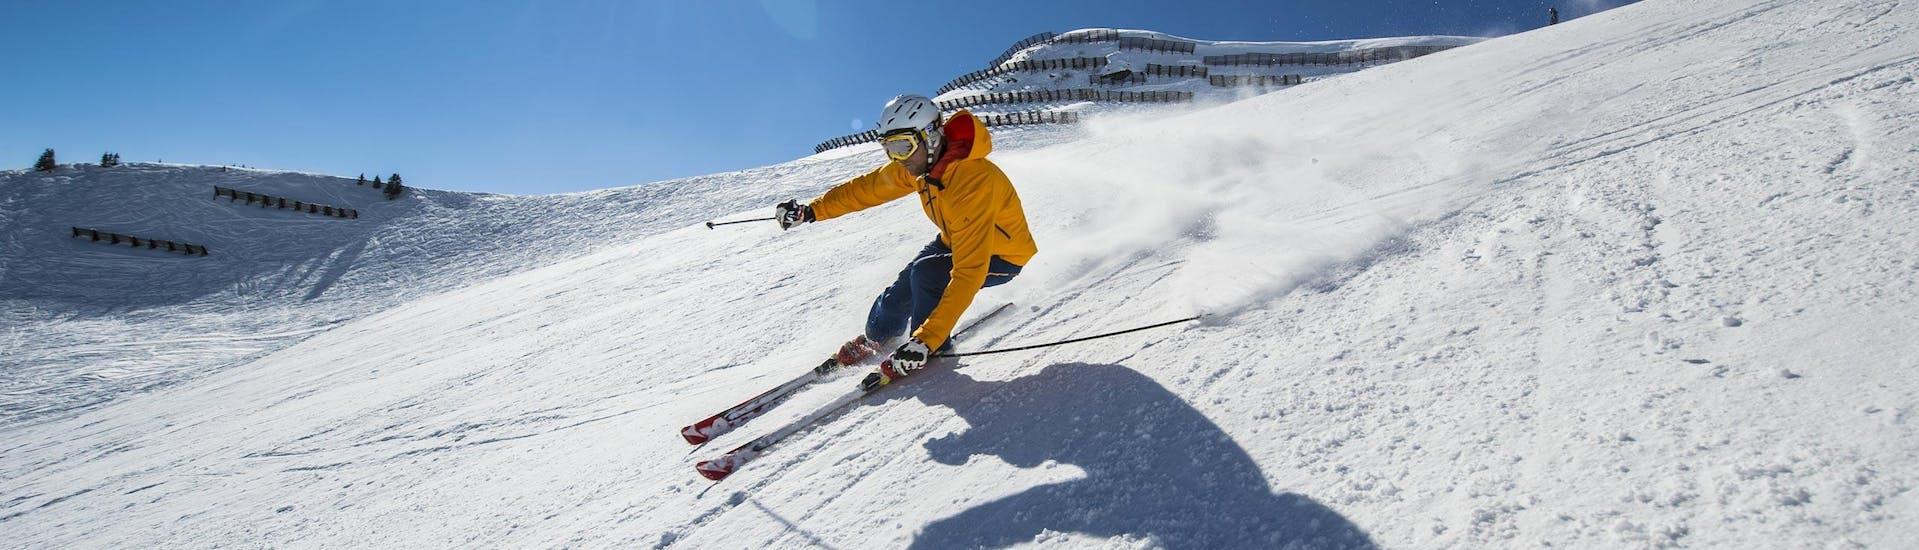 Ski Lessons for Adults - Beginner: A skier is skiing down a sunny ski slope while participating in an activity offered by fun  & pro Ski- and Snowboardschool.